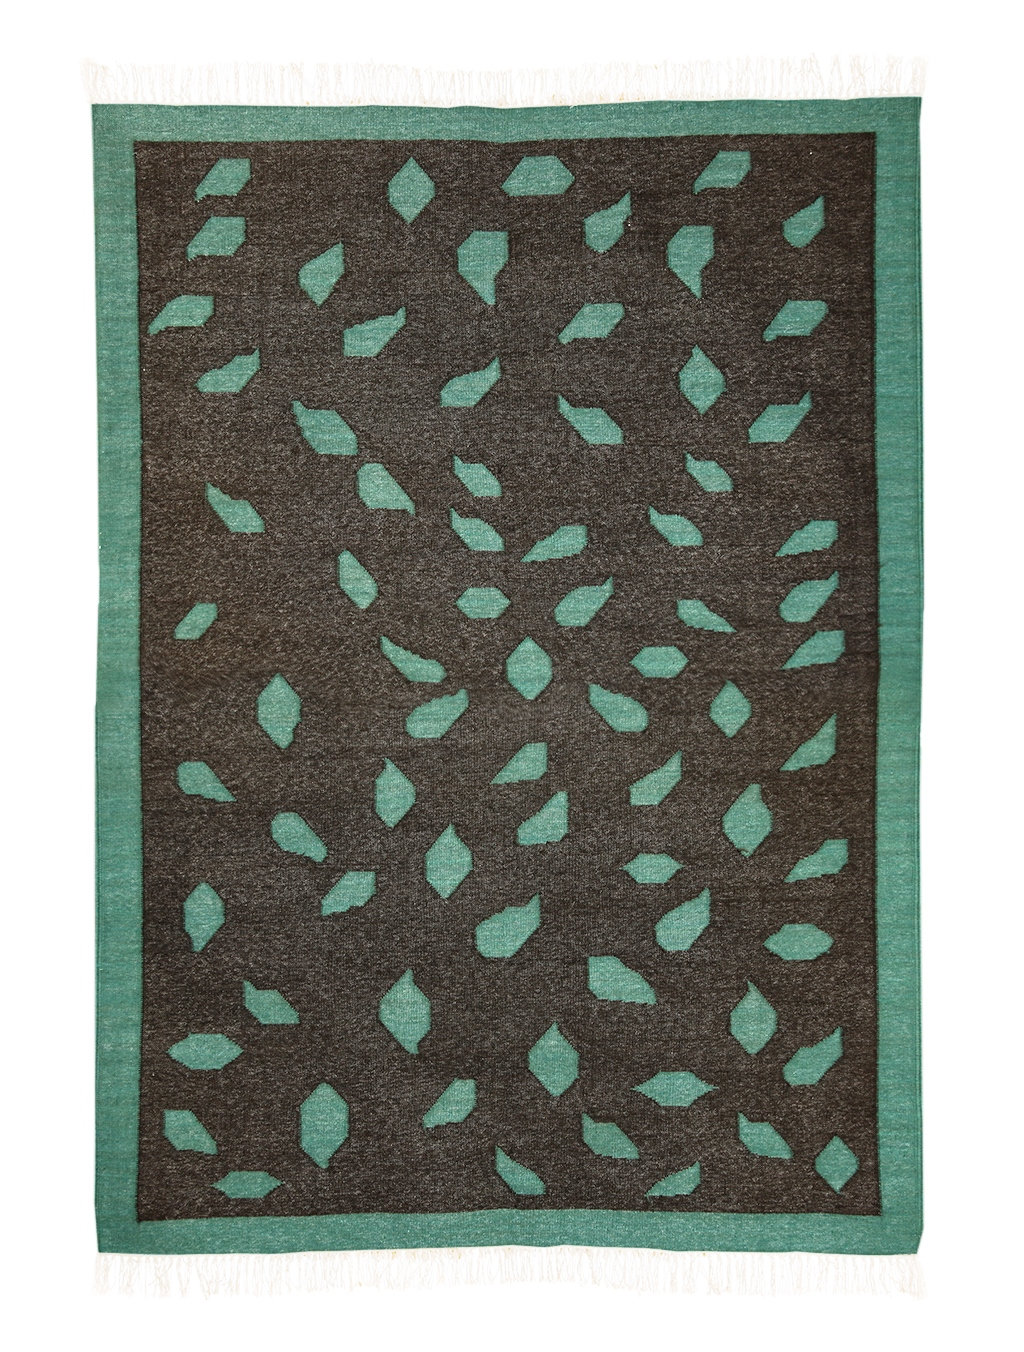 Patta Grey Amp Green Wool Amp Cotton Dhurrie Rug Mahout